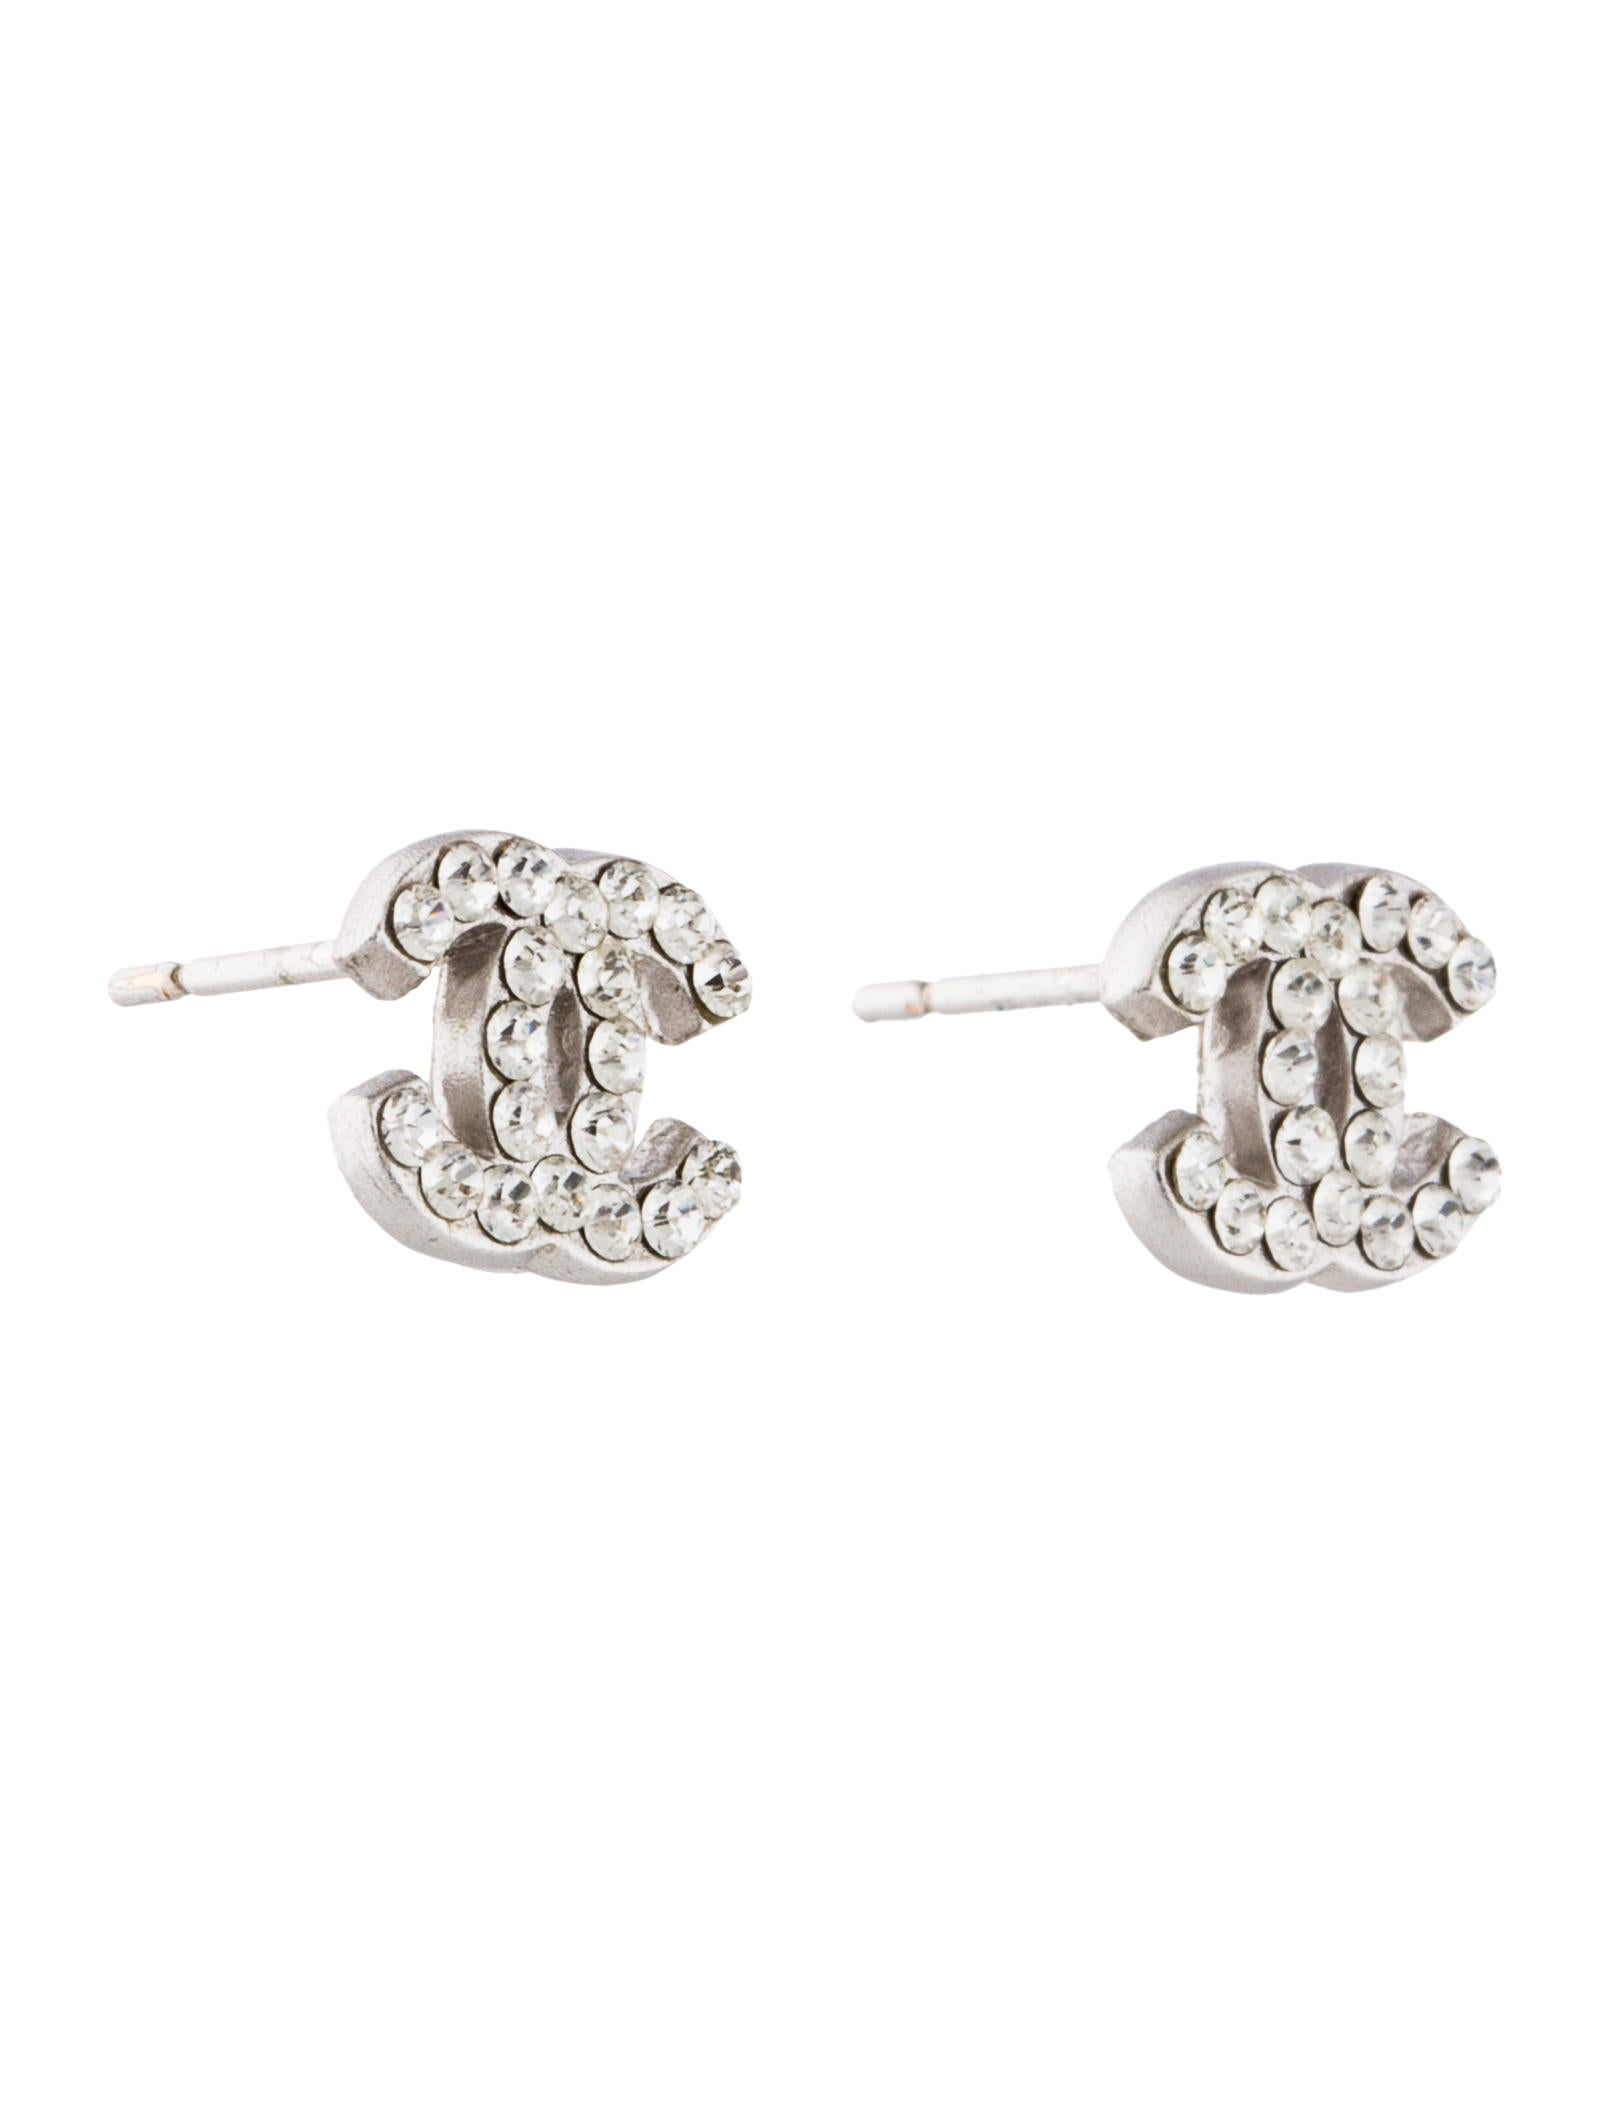 channel earrings studs chanel cc studs earrings cha156964 the realreal 6741